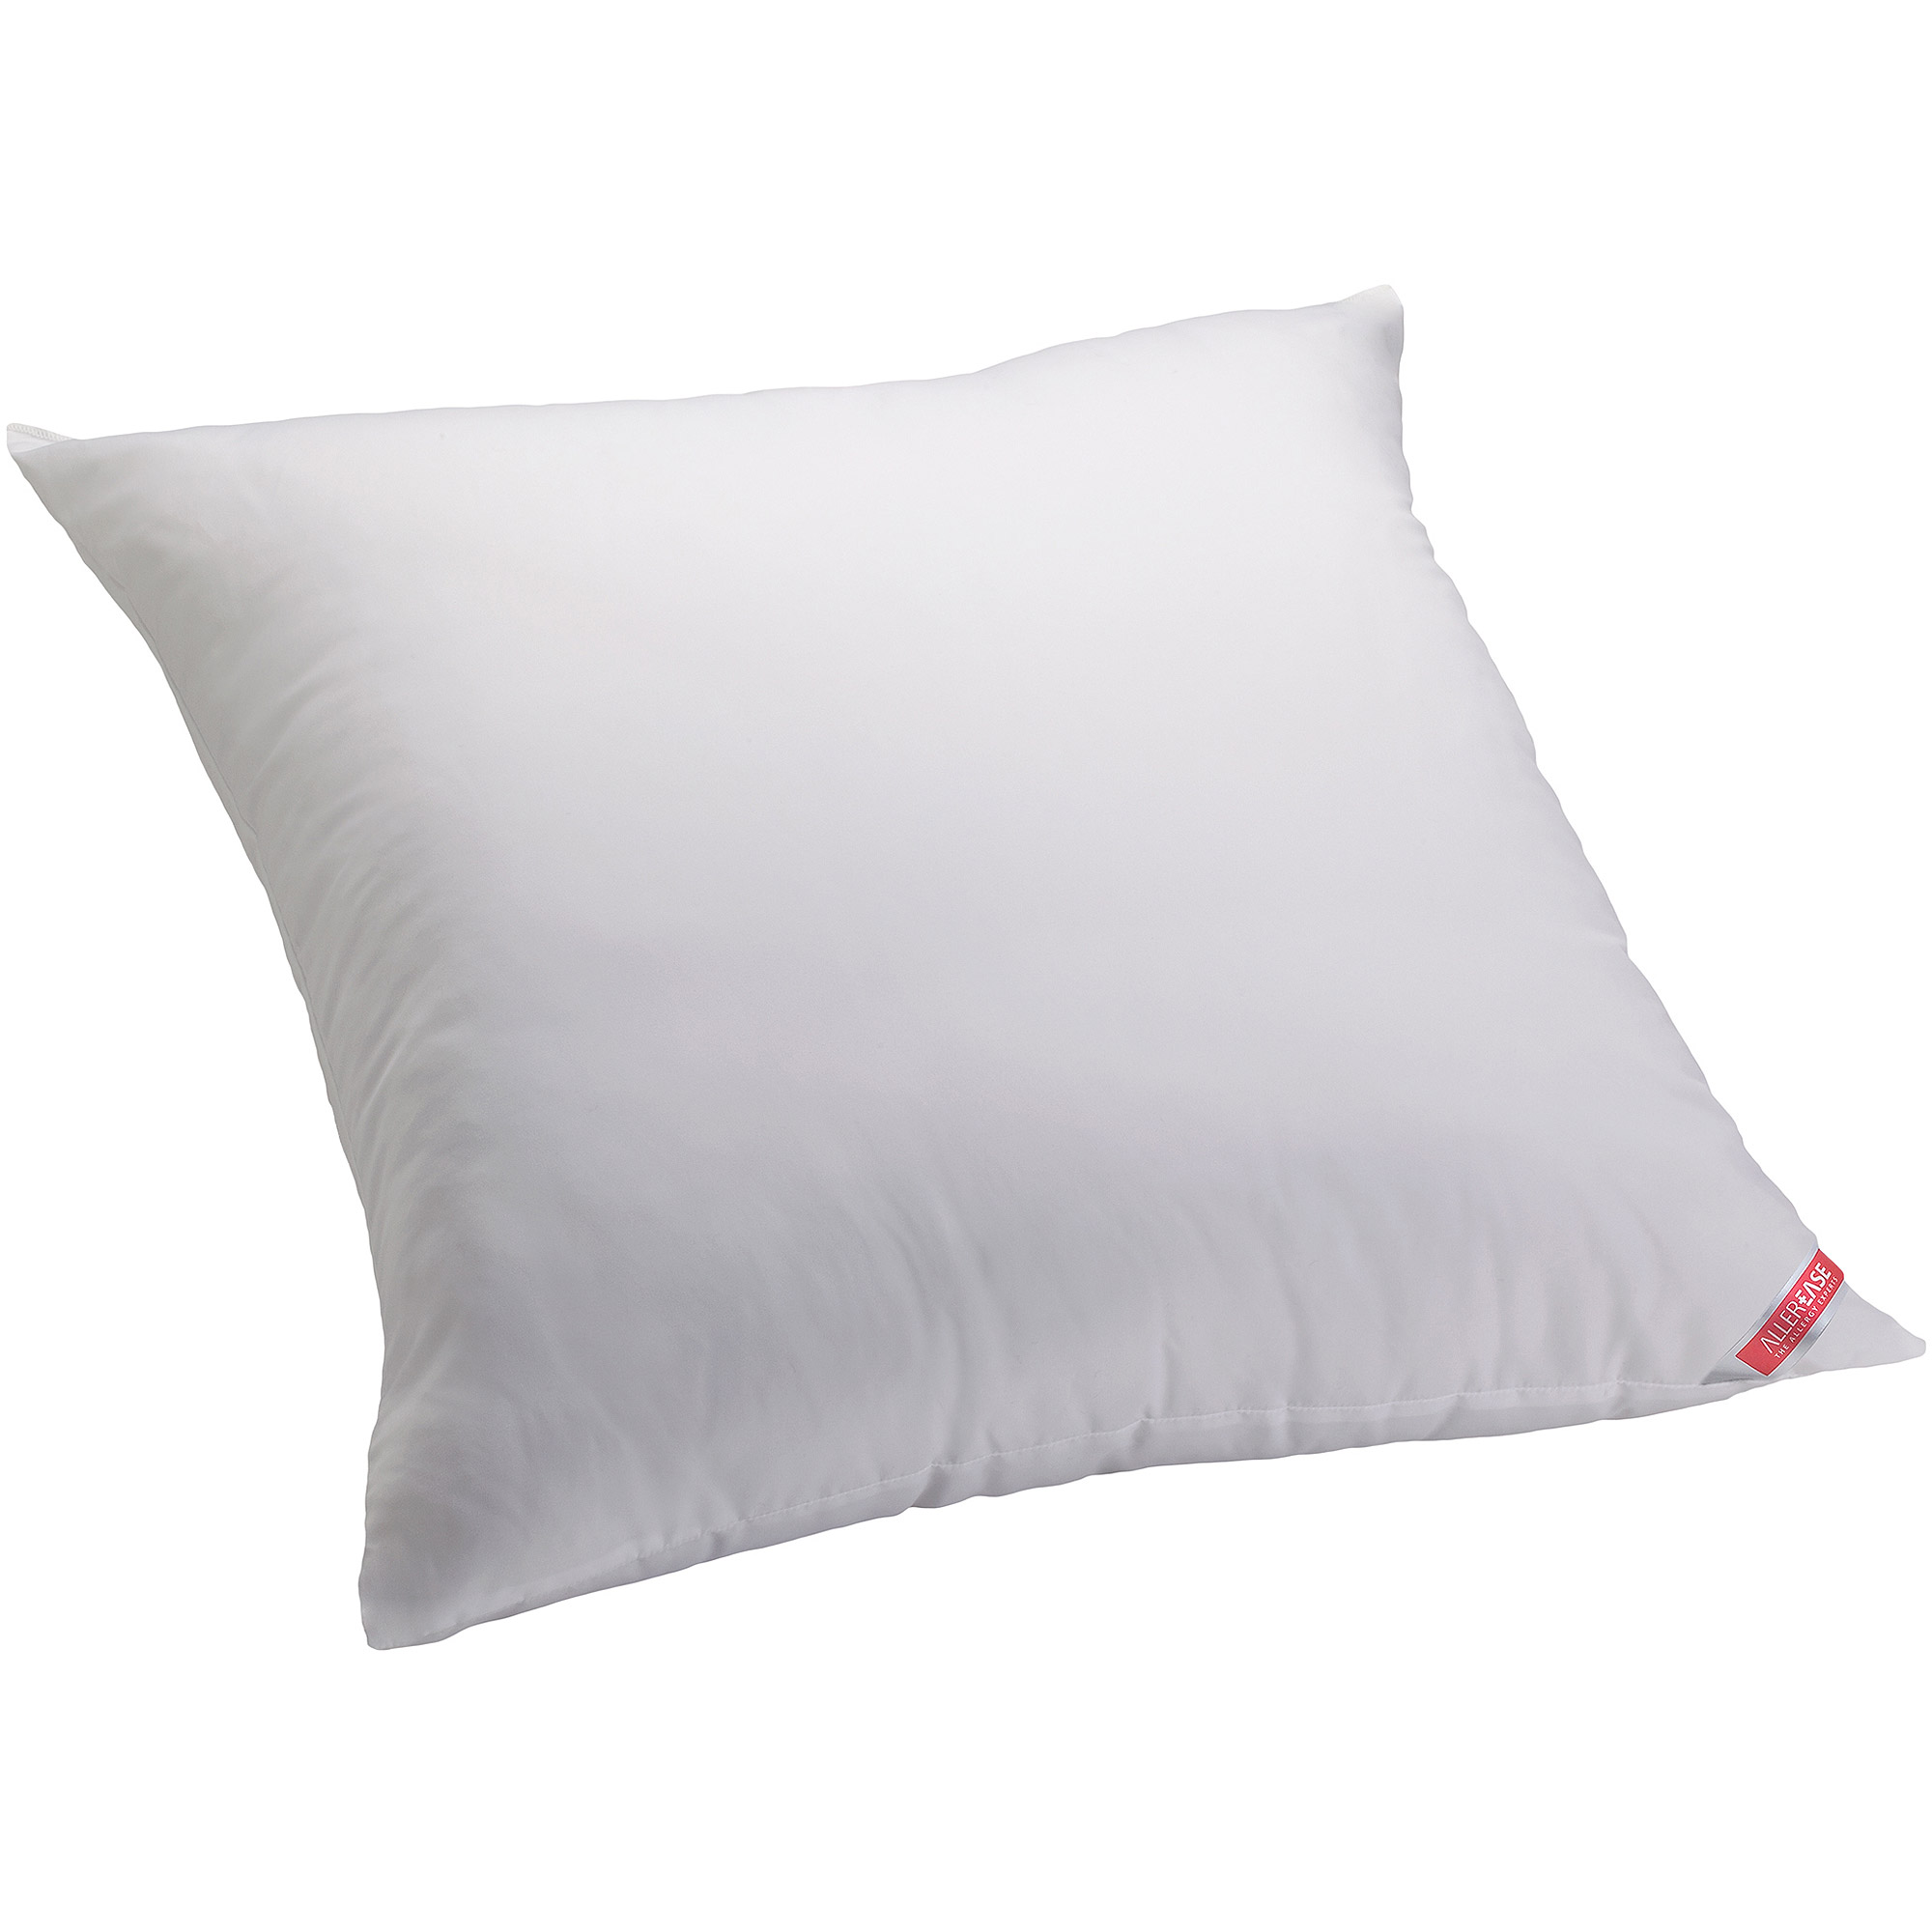 Euro Pillow Value Bundle  Pick 2  Walmartcom